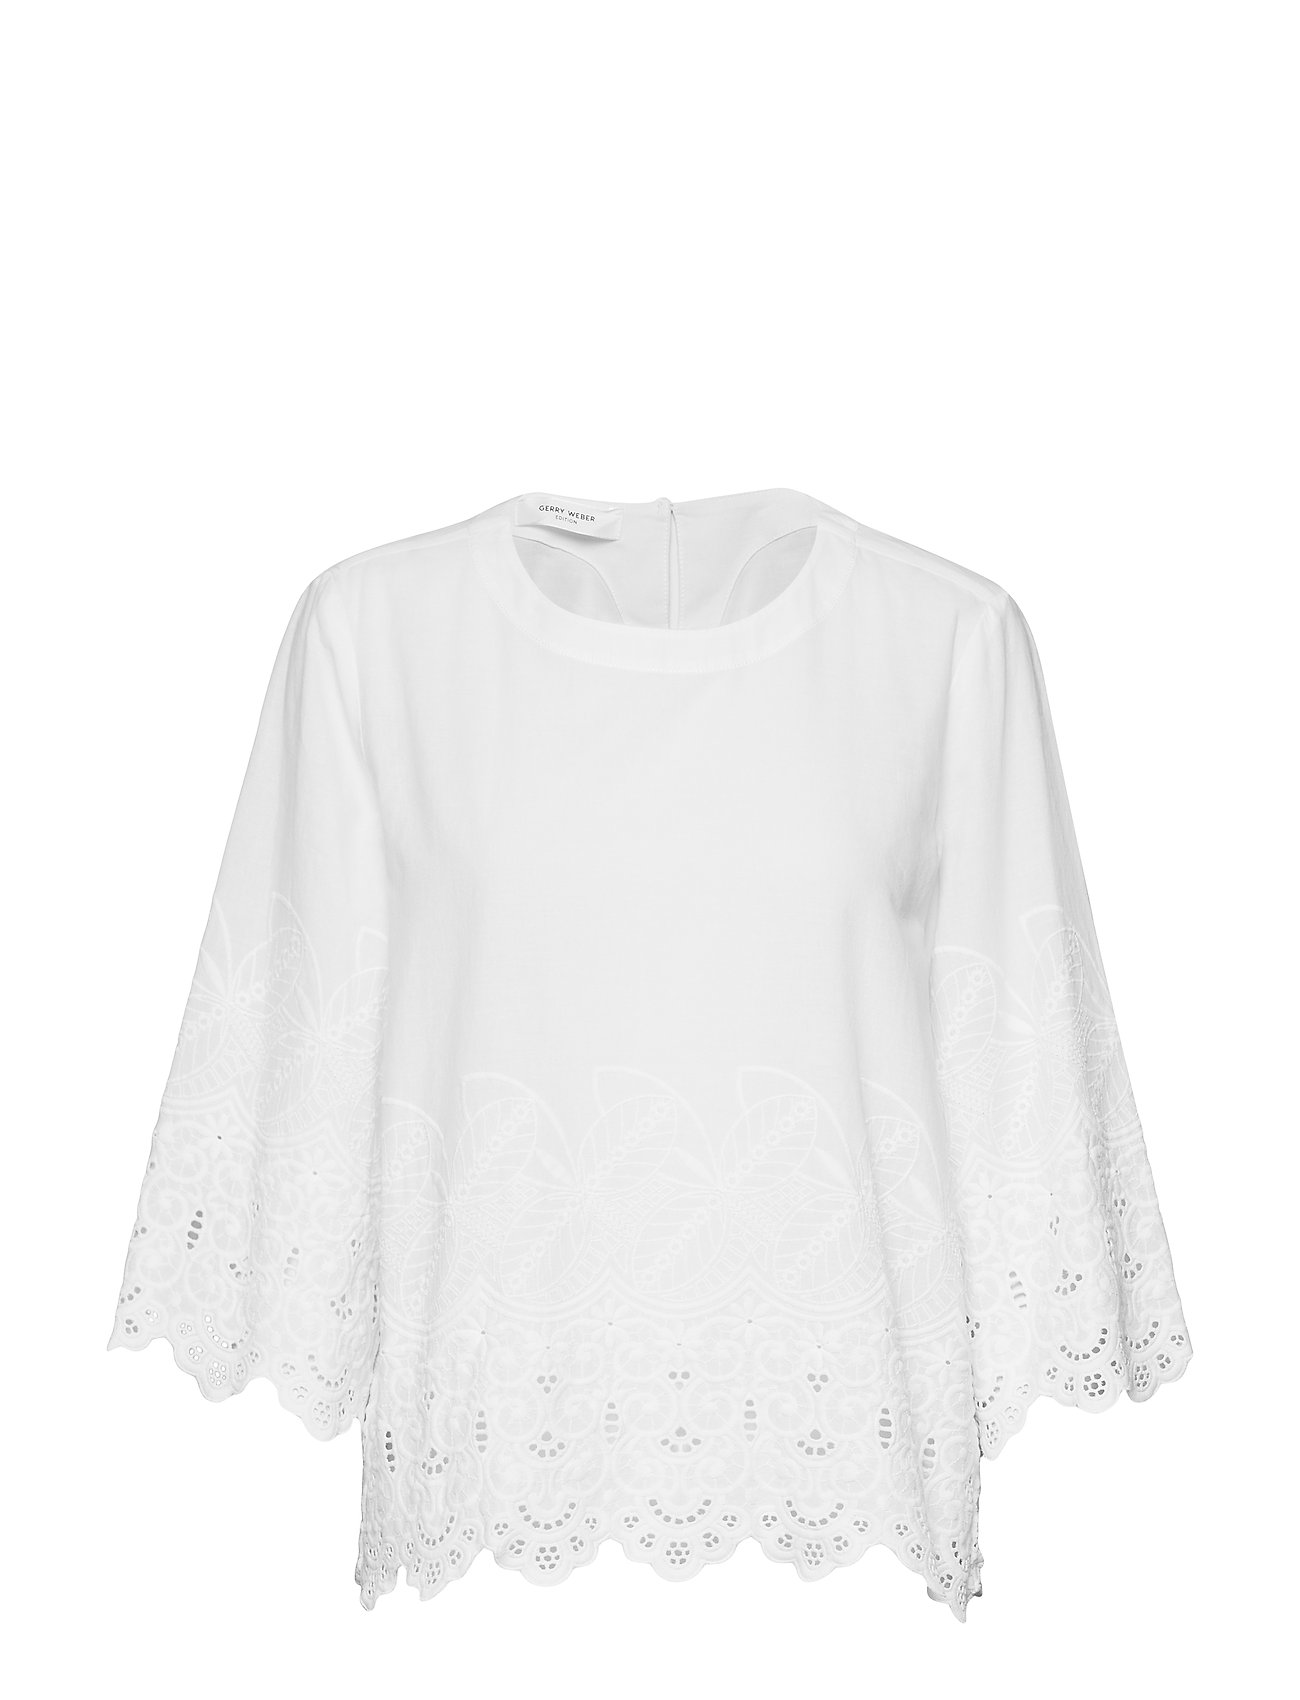 Gerry Weber Edition BLOUSE 3/4-SLEEVE - WHITE/WHITE